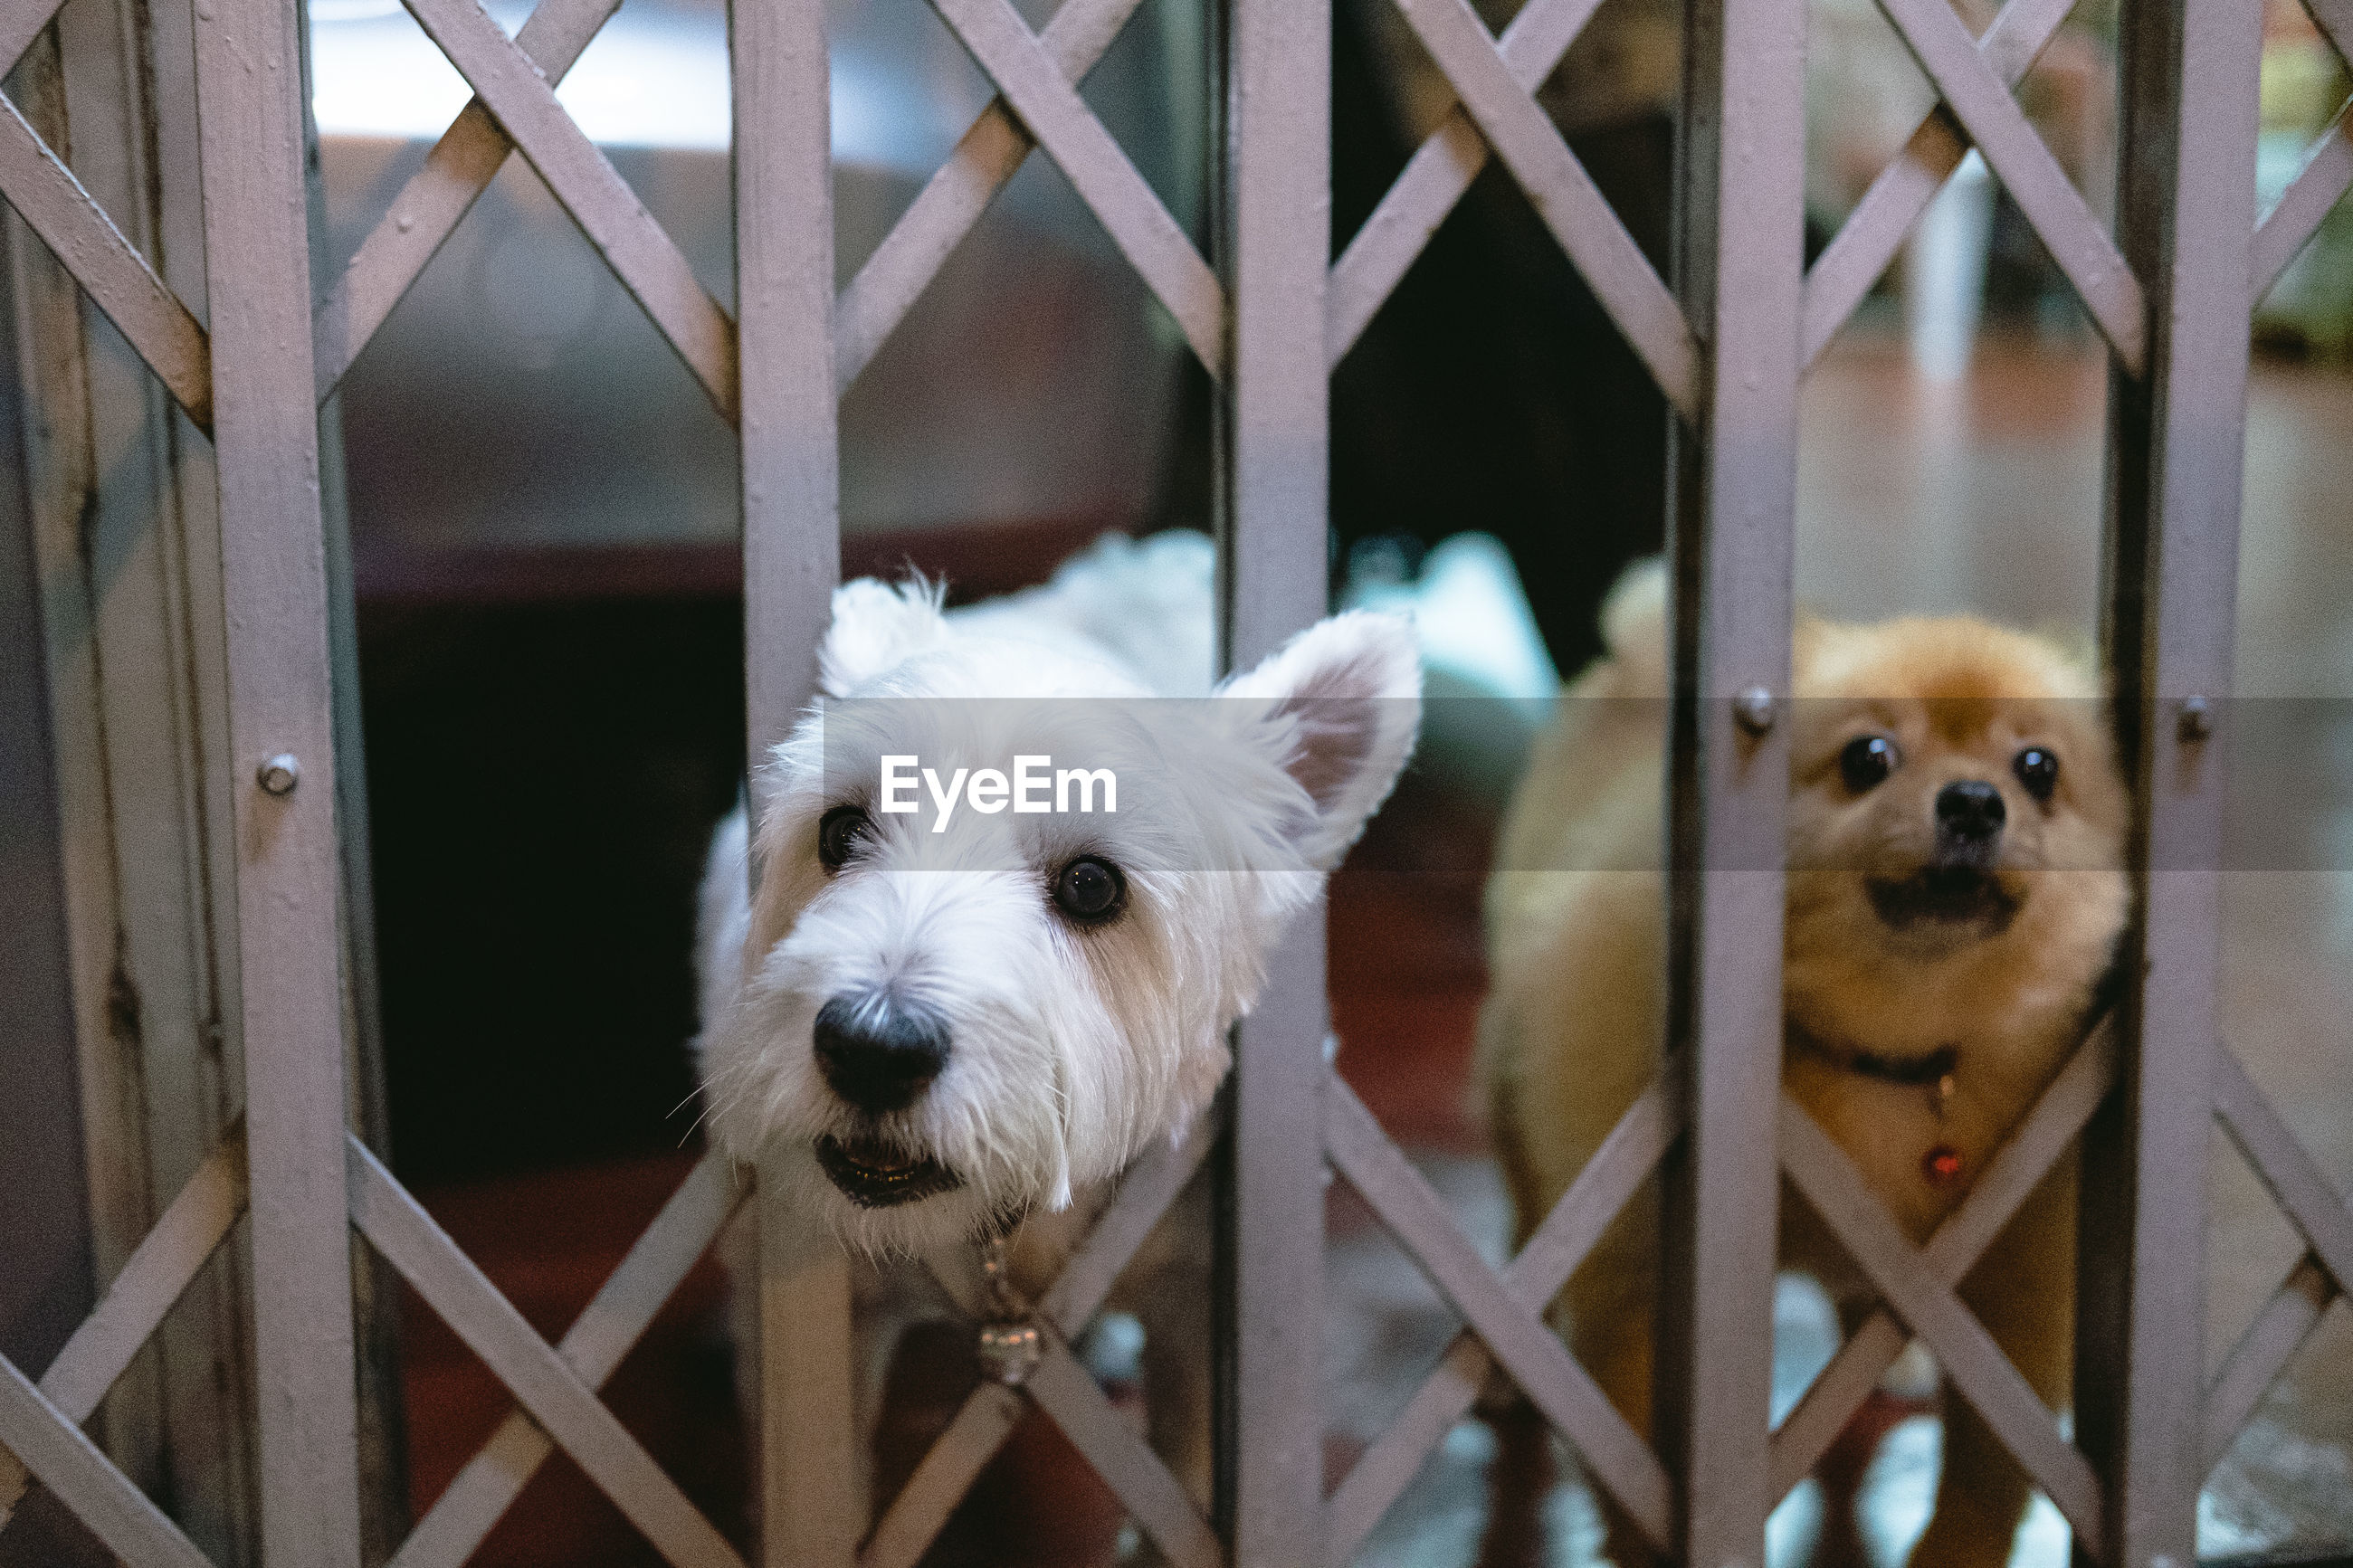 Portrait of dogs through metal fence